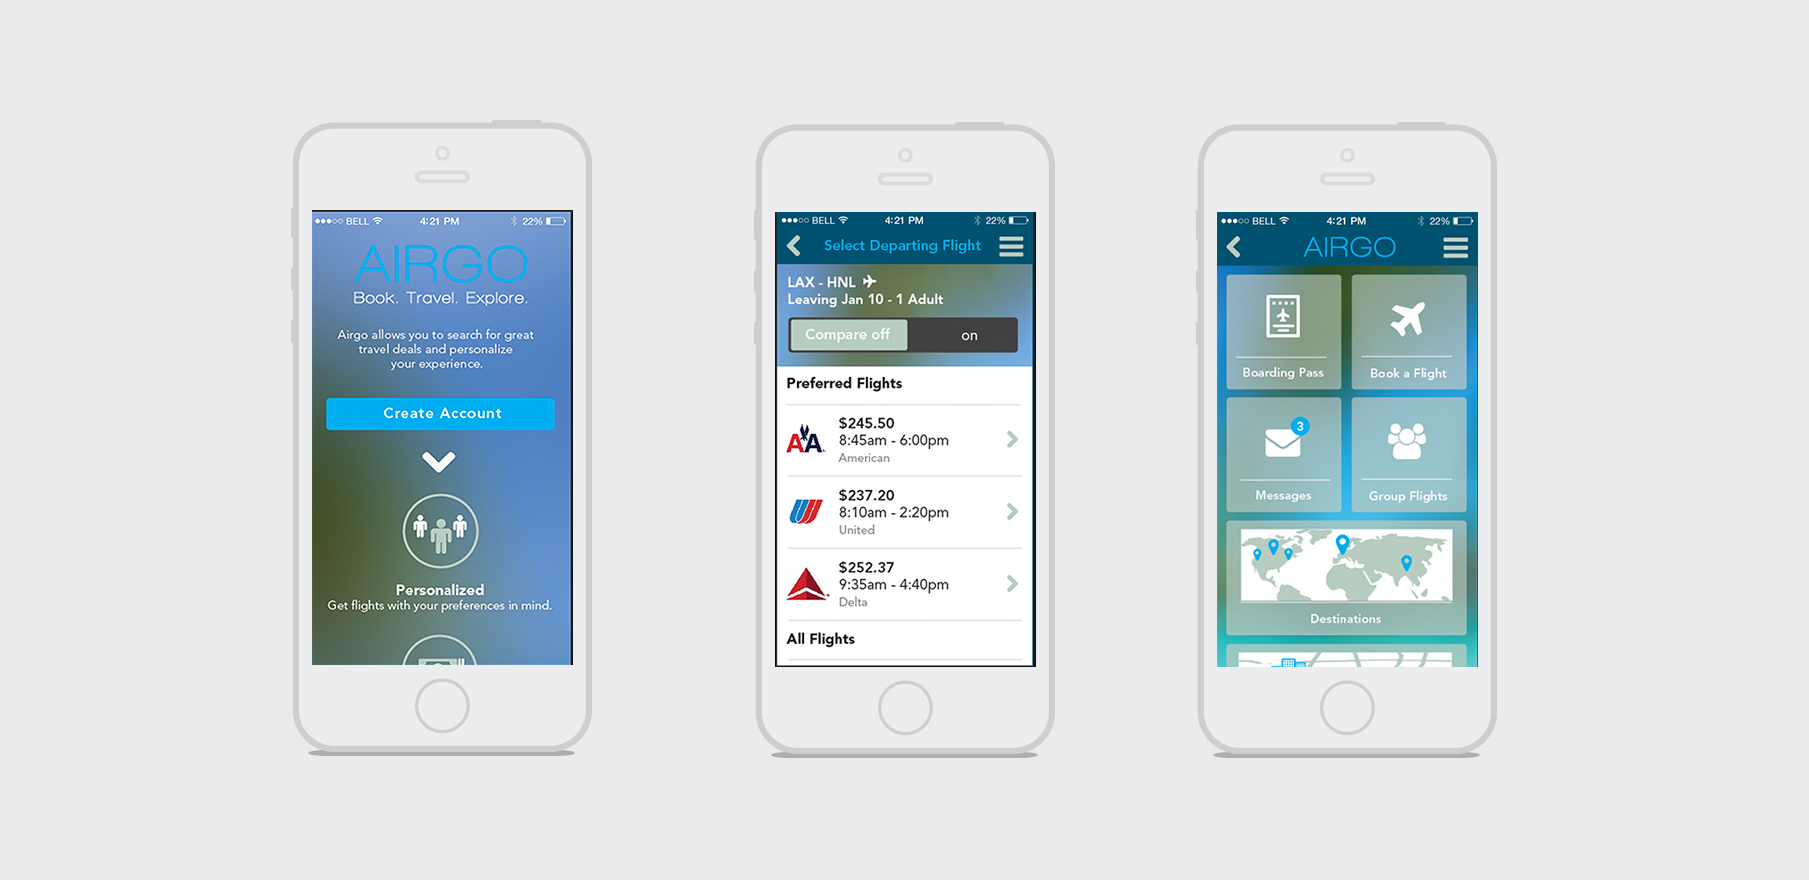 airgo travel app - See my process from start to finish with this personal project.